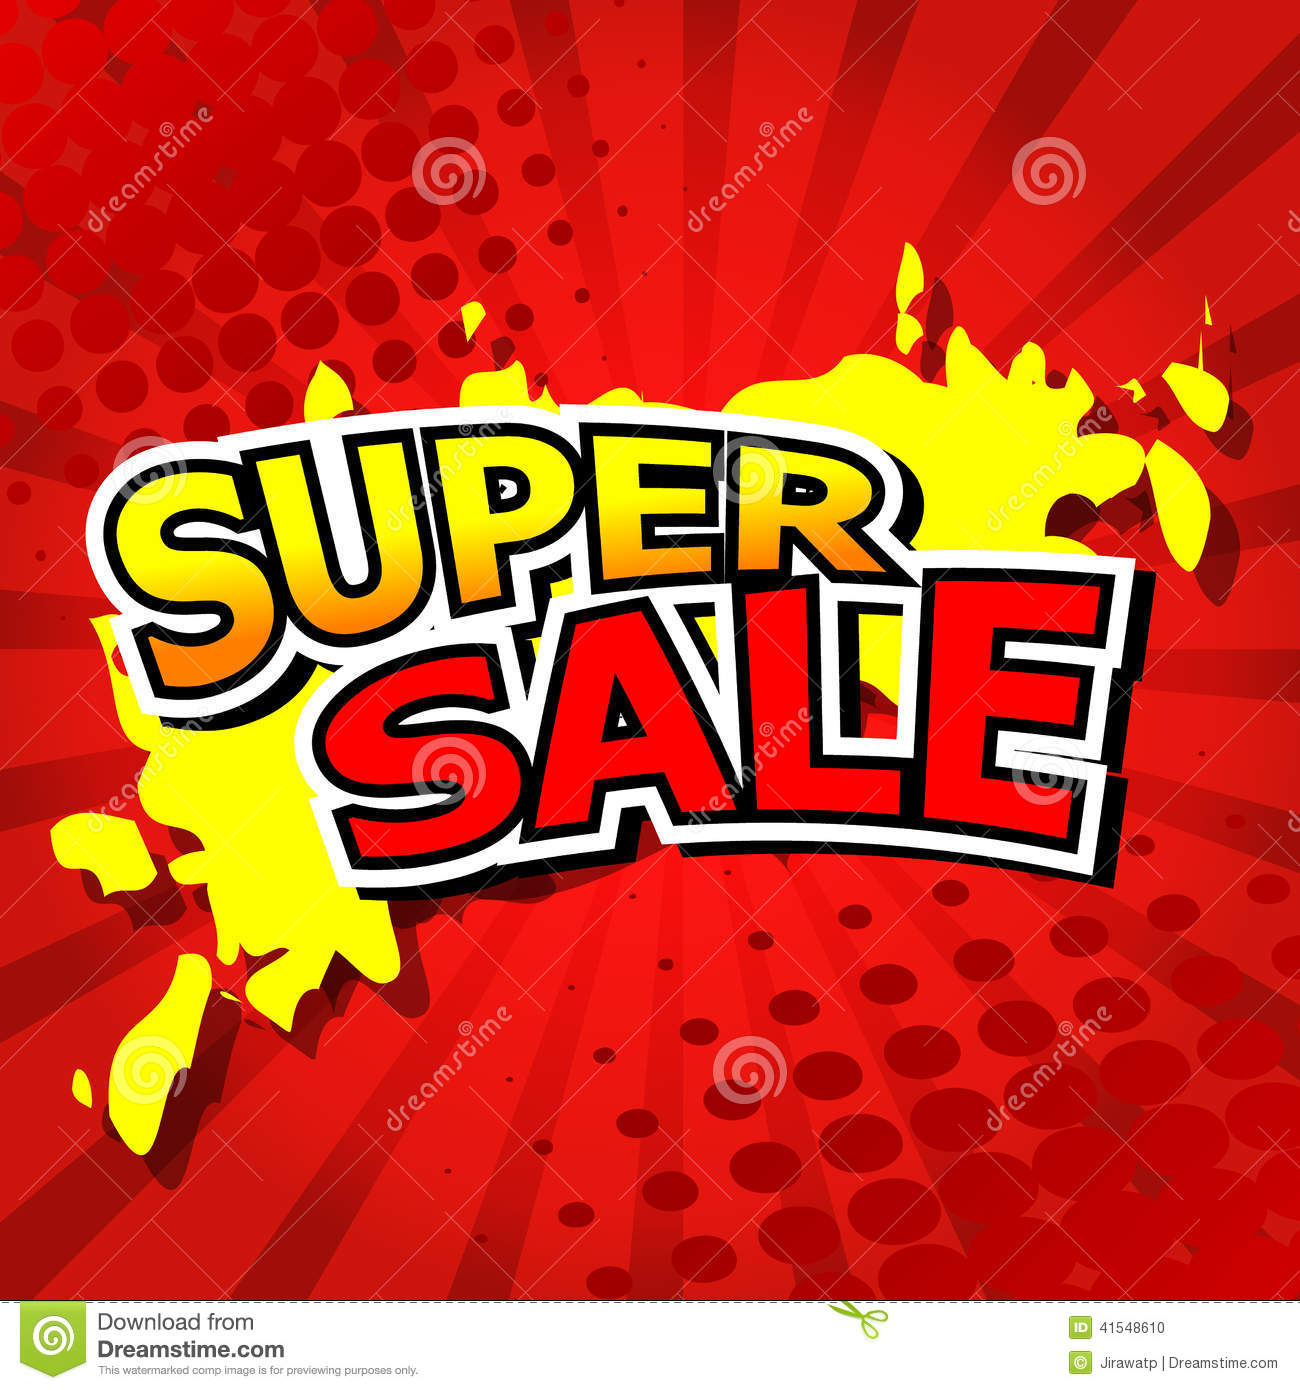 Super sale background with red stock vector image 41548610 for Poster prints for sale